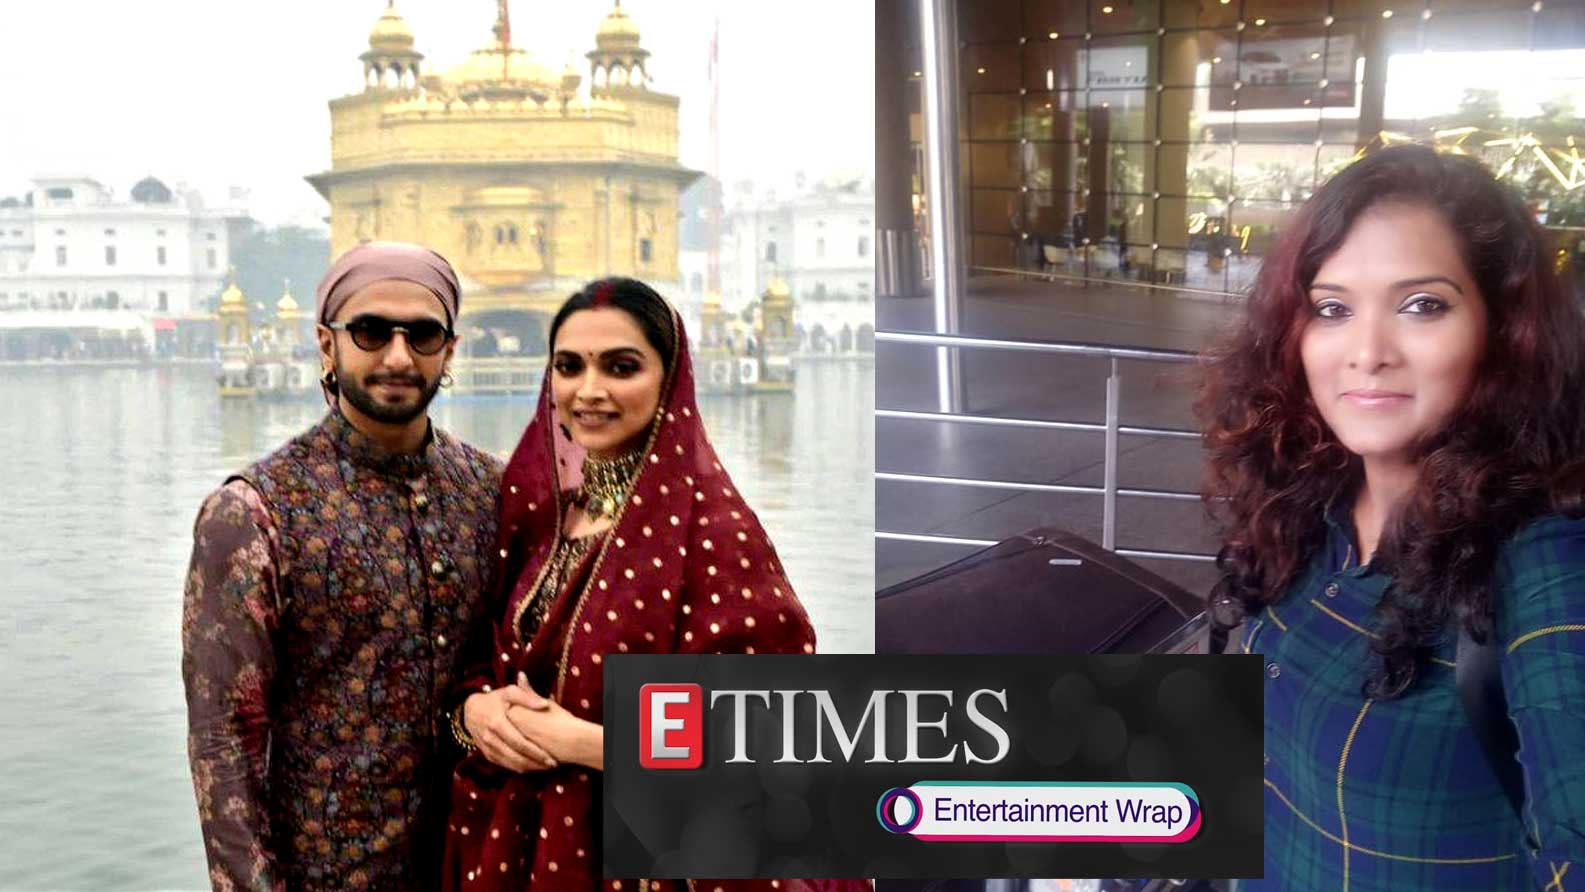 ranveer-singh-deepika-padukone-offer-prayers-at-golden-temple-with-families-marathi-singer-geeta-mali-dies-in-accident-and-more